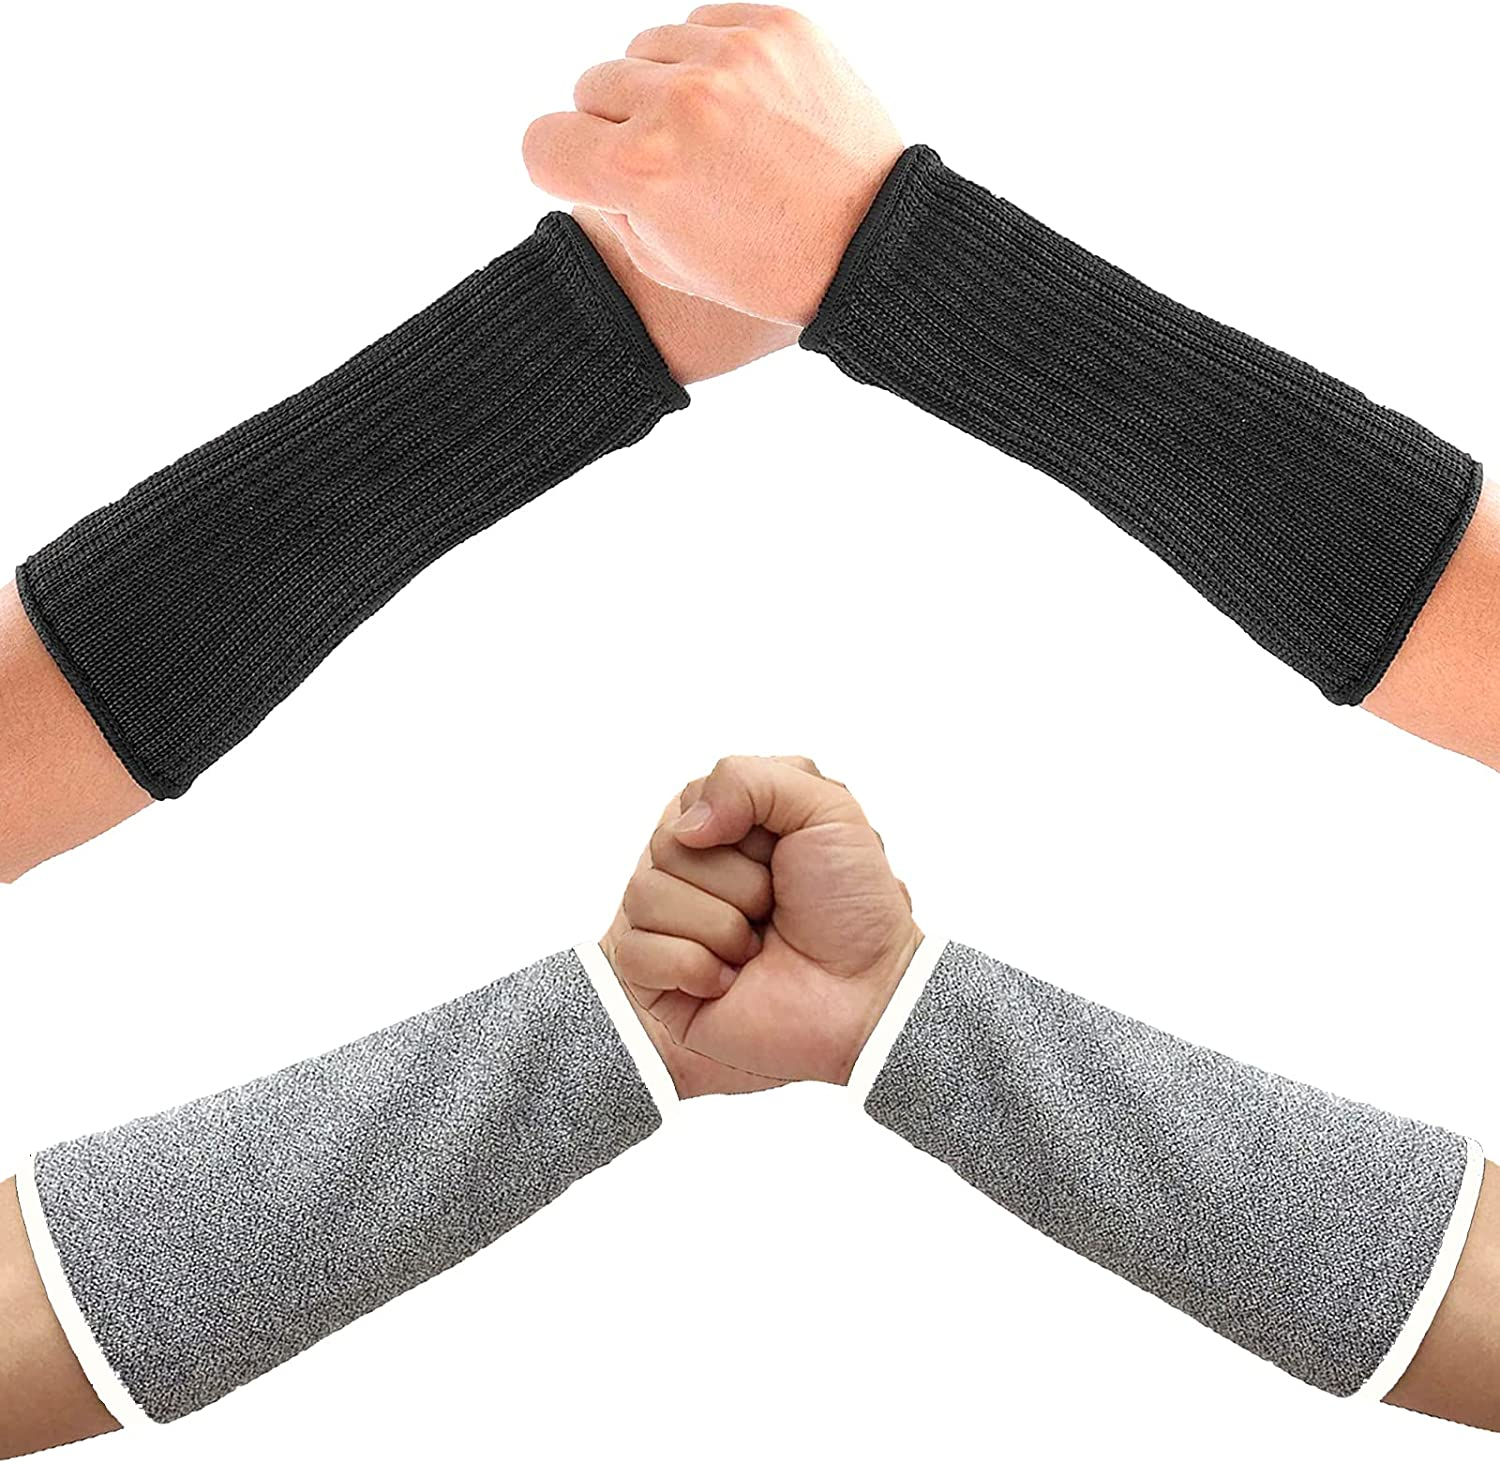 2 Pairs Cut Resistant Arm Protection Sleeves, Level 5 Protective Sleeves for Arms Arm Protectors for Thin Skin and Bruising, Anti Abrasion Arm Guard Protective Arm Sleeves for Kitchen Garden Yard Work